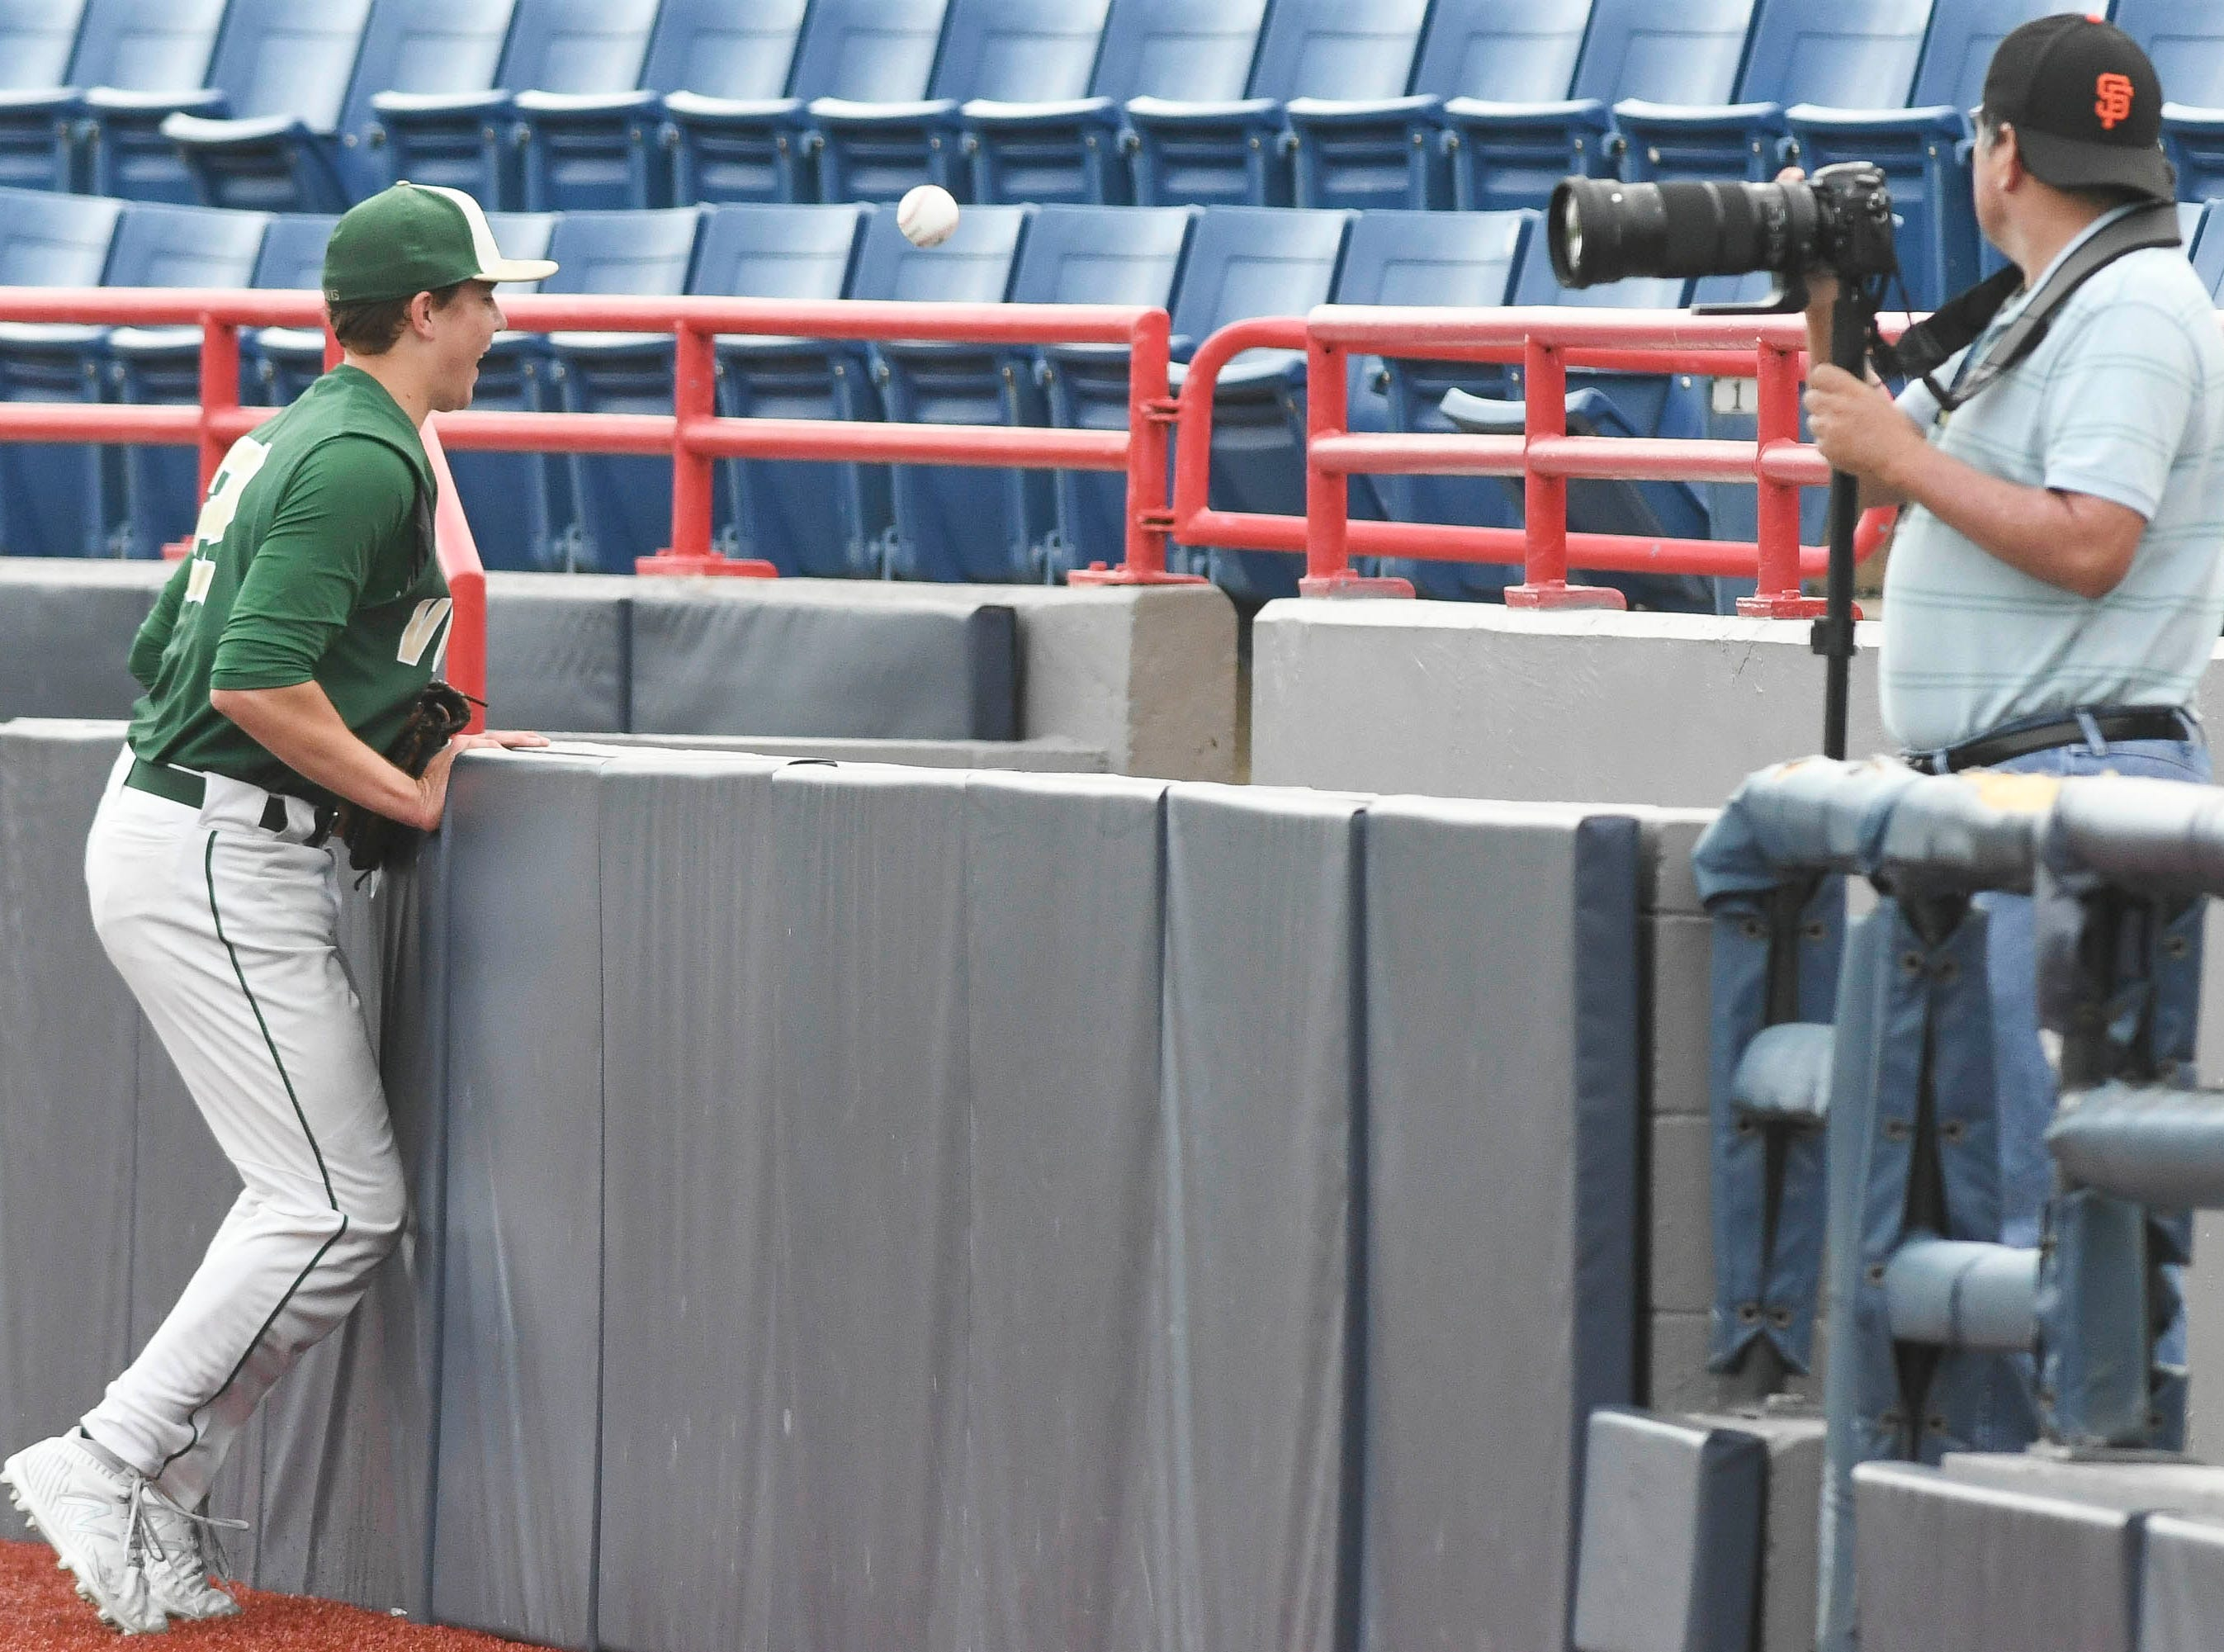 Brady Janssen of Viera chases a foul ball out of bounds during Wednesday's game against Sebastian River.